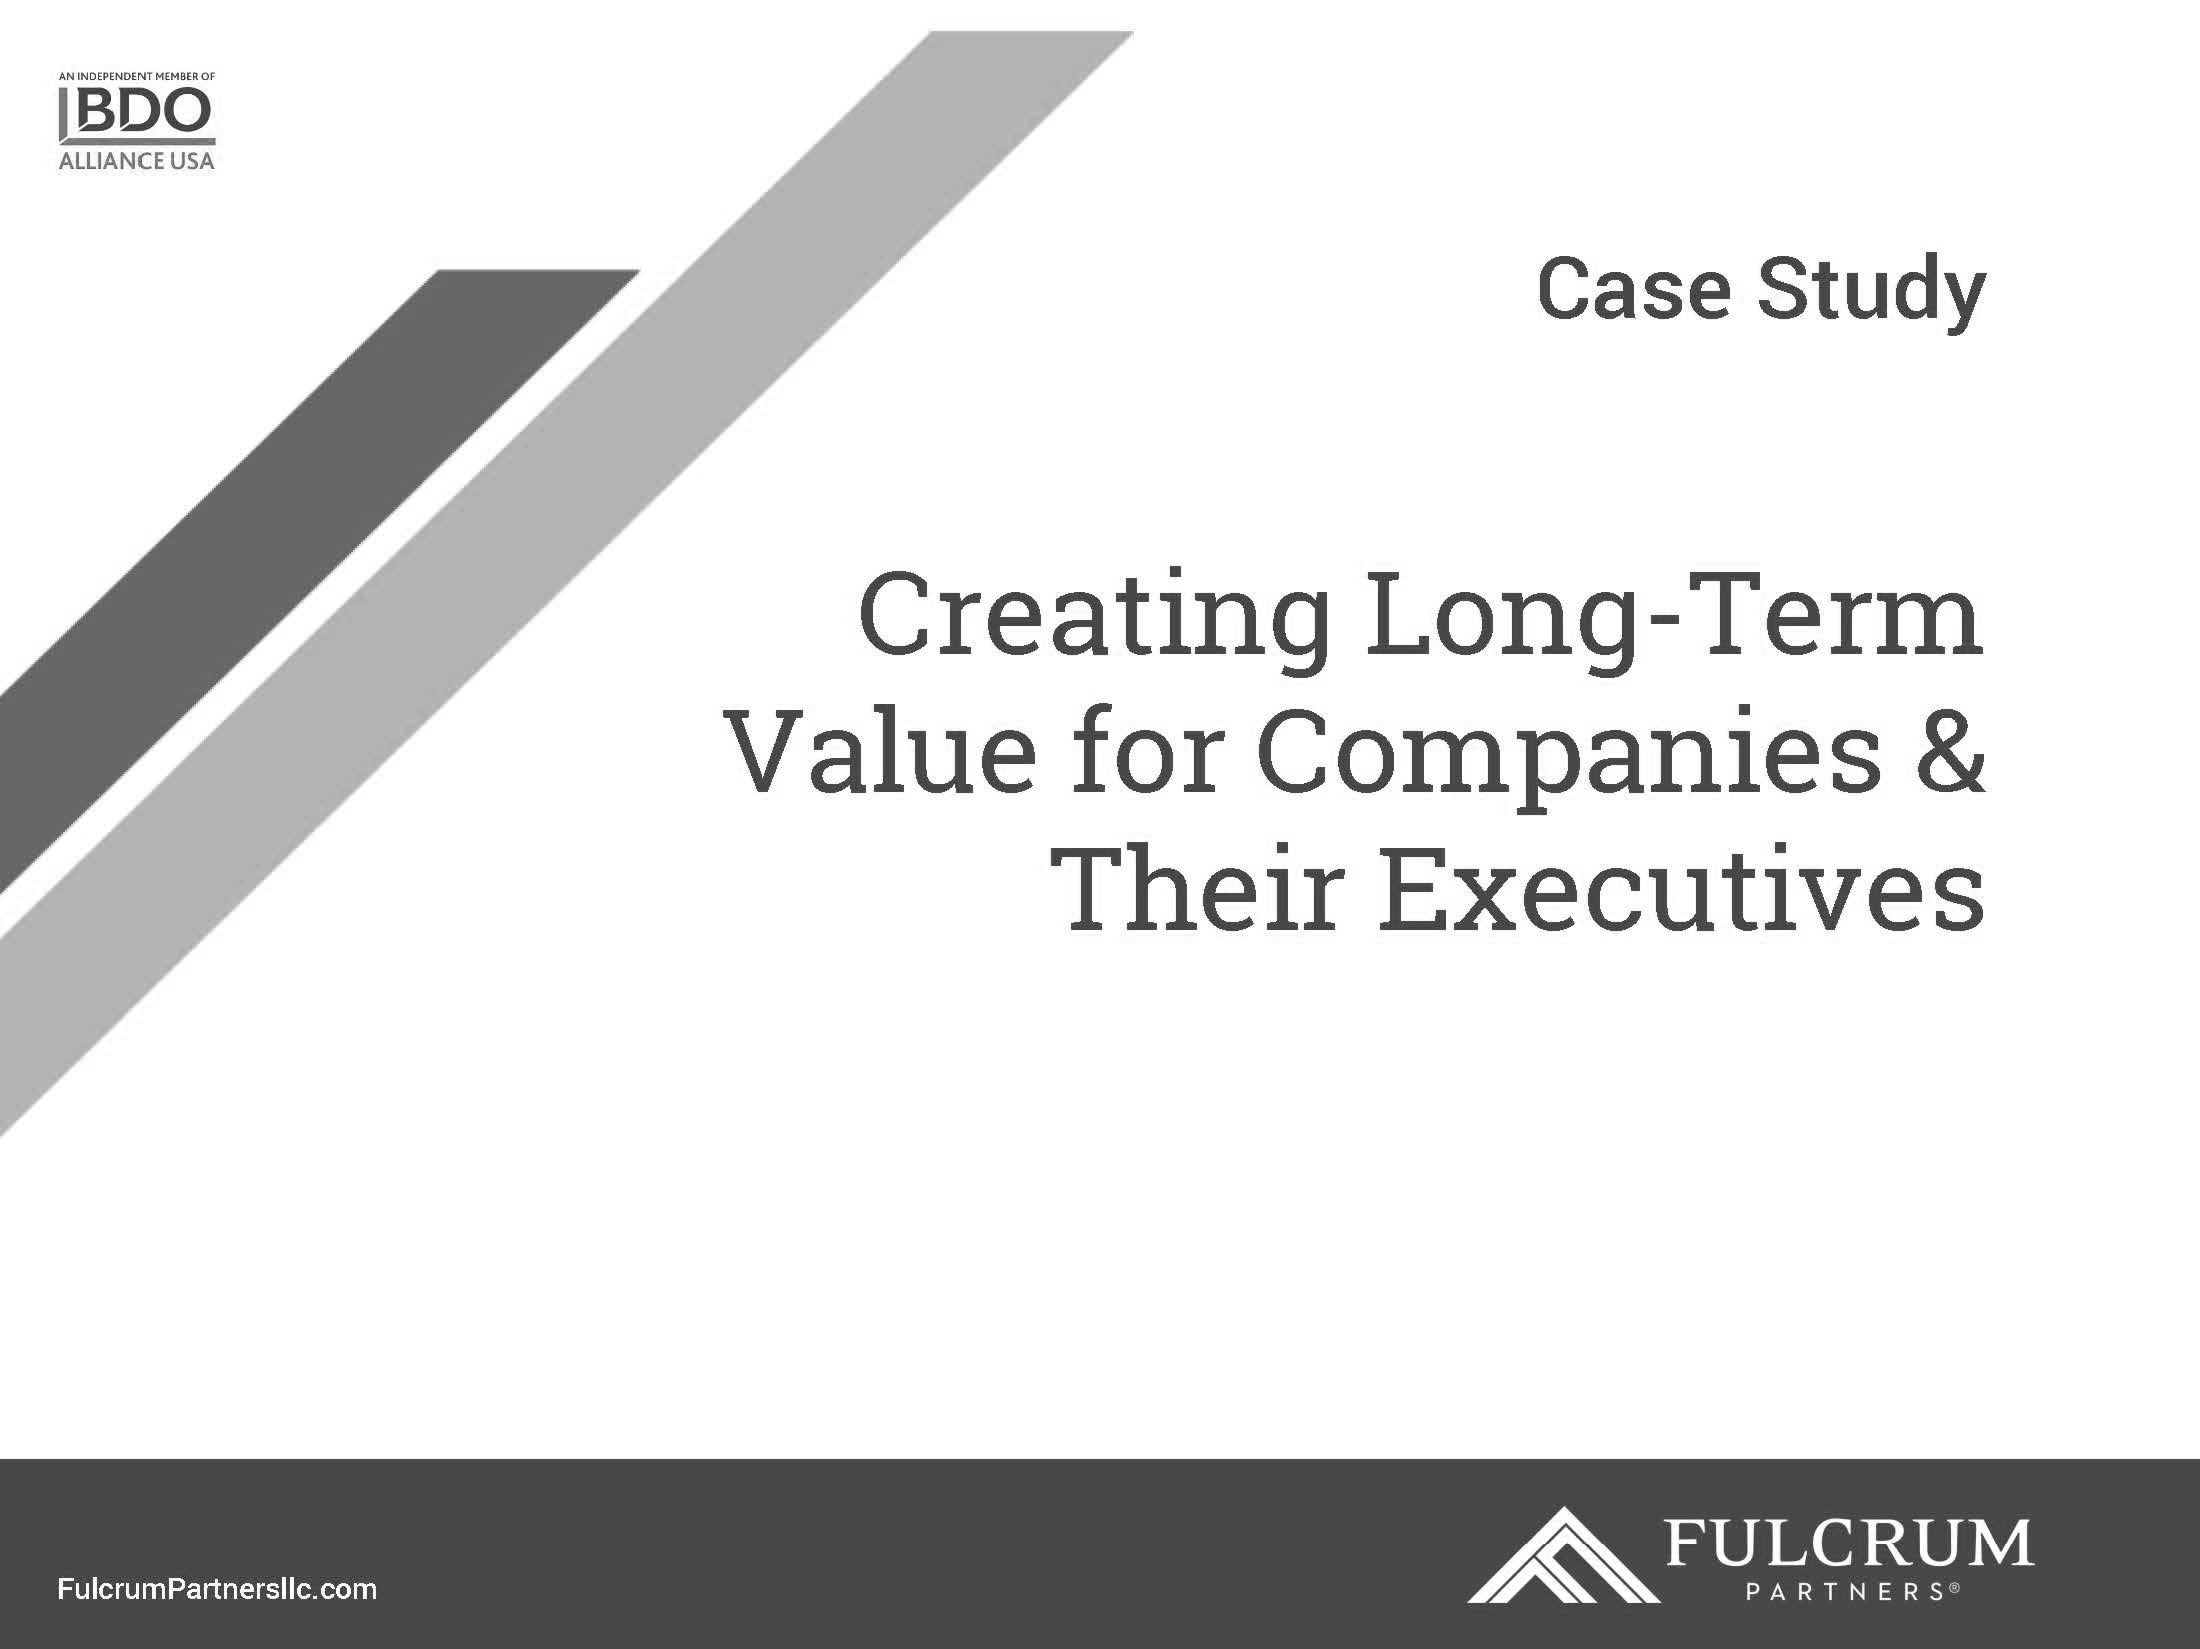 Download Creating Long-Term Value for Companies & Their Executives case study PDF